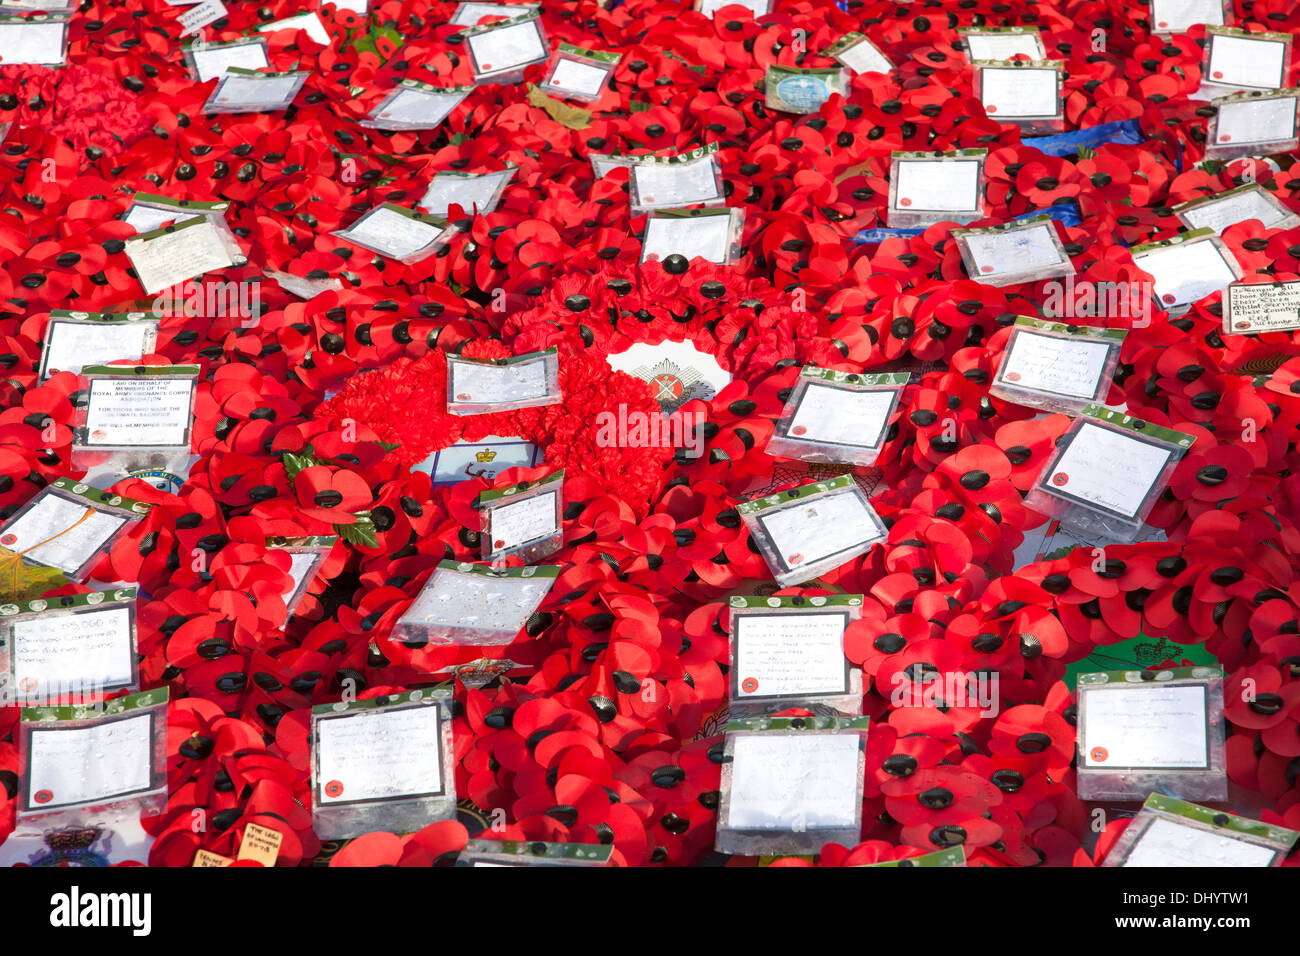 Remembrance Day poppy wreaths at the Cenotaph, Whitehall, Westminster, London. - Stock Image